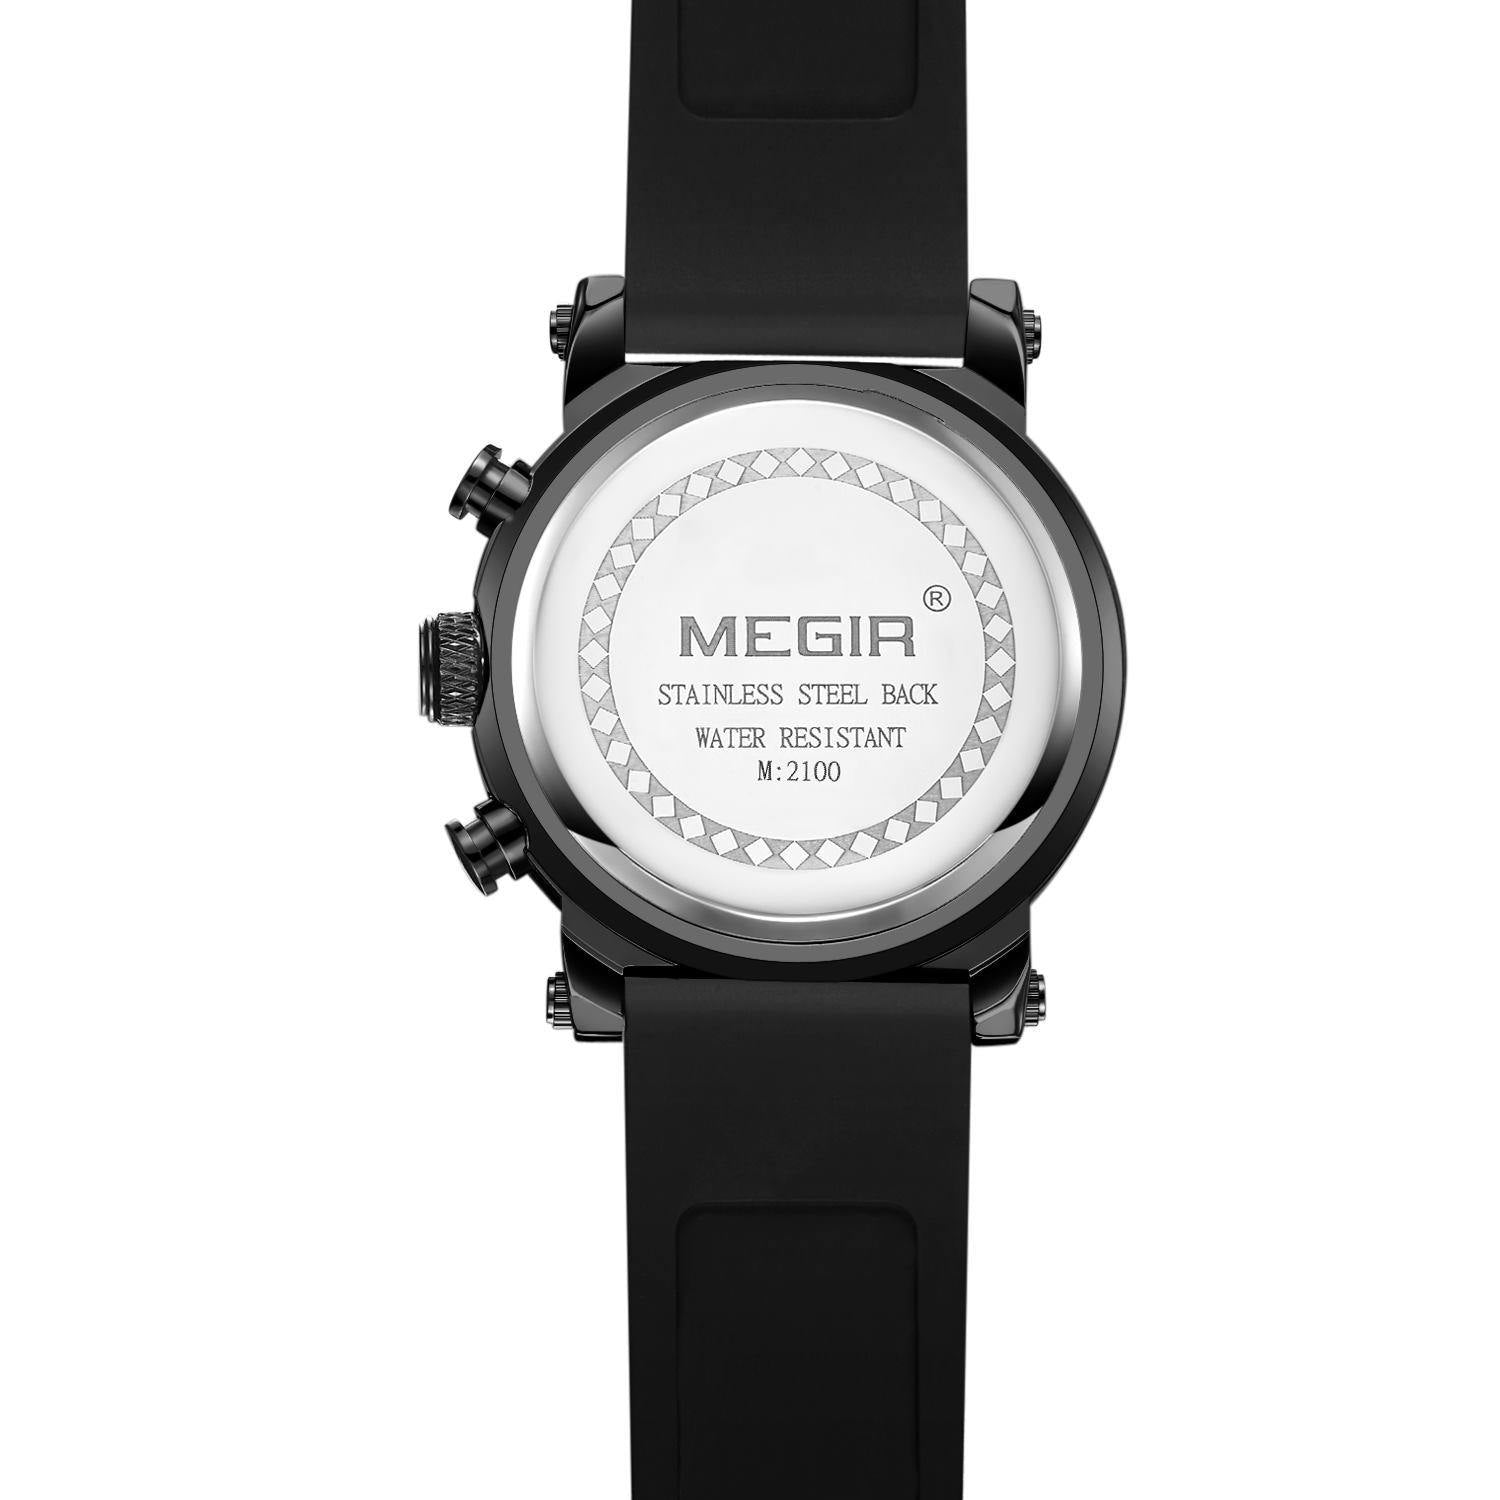 MEGIR luxury brand quartz watch 2100 - MEGIR